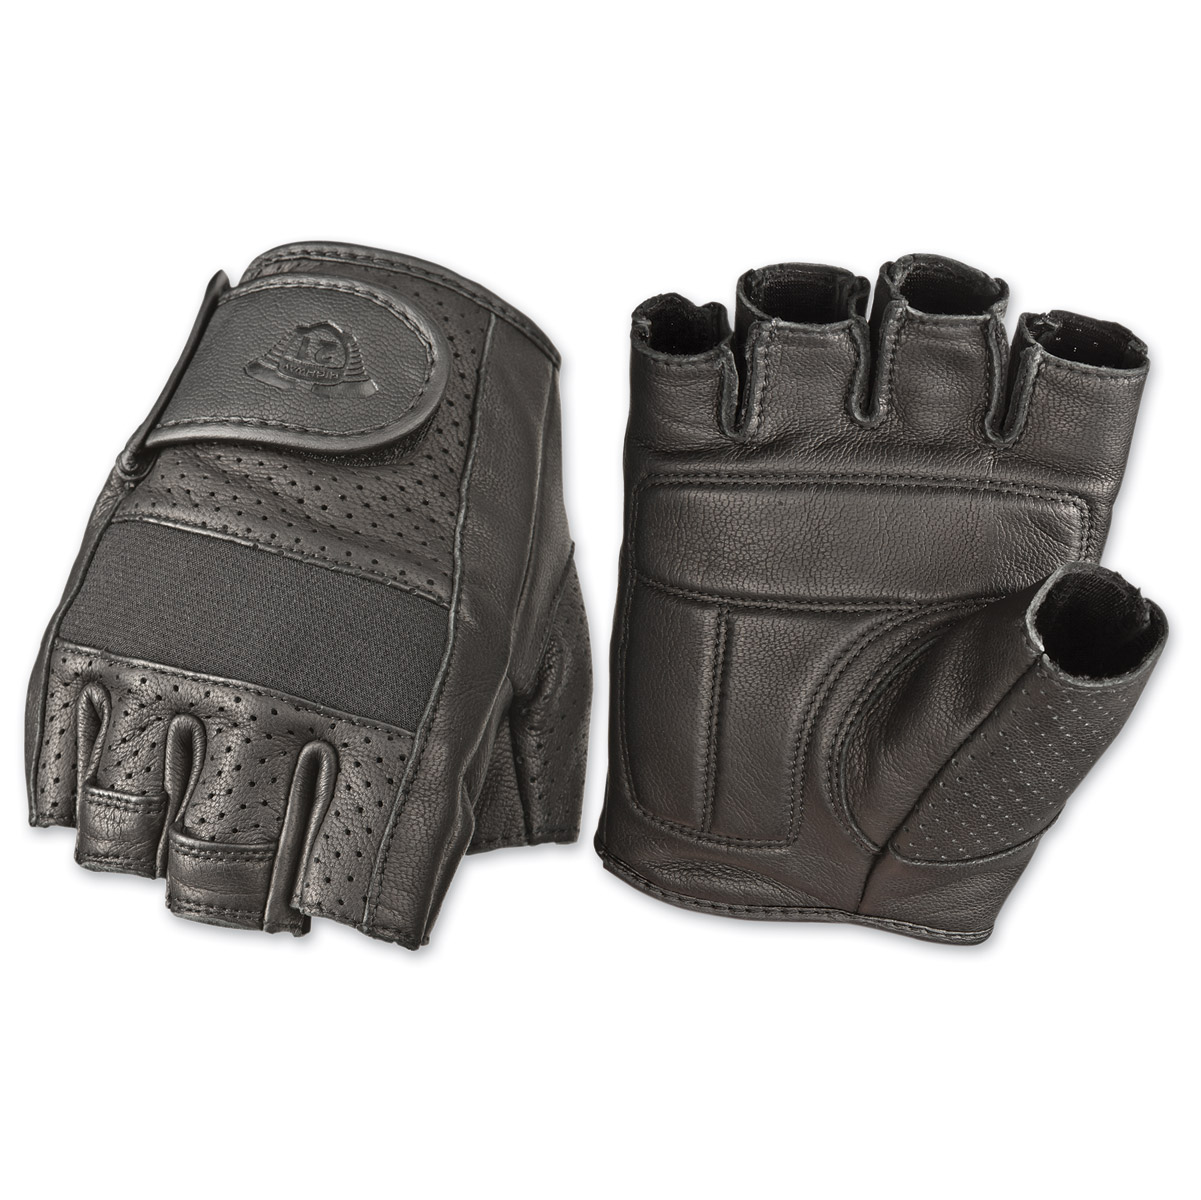 Highway 21 Men's Jab Perforated Fingerless Black Leather Gloves